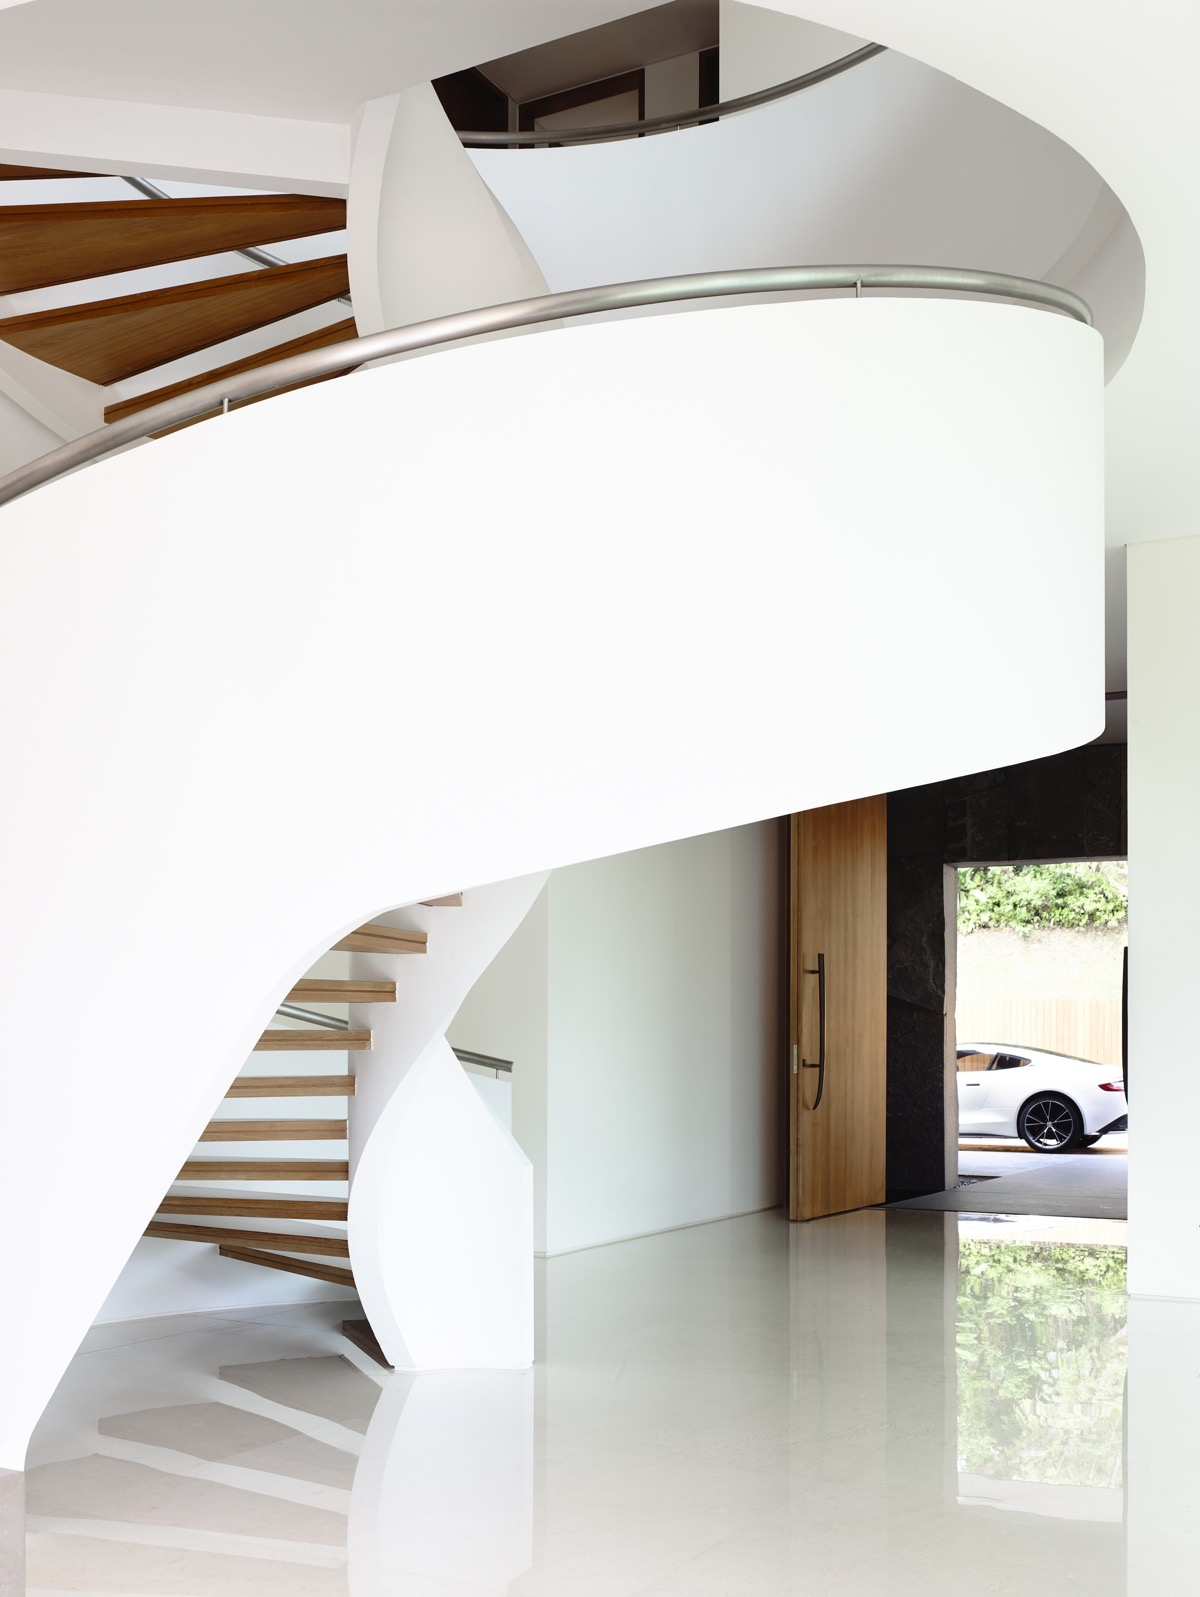 The Contemporary Home Of A Majestic Pre-War Rain Tree images 22